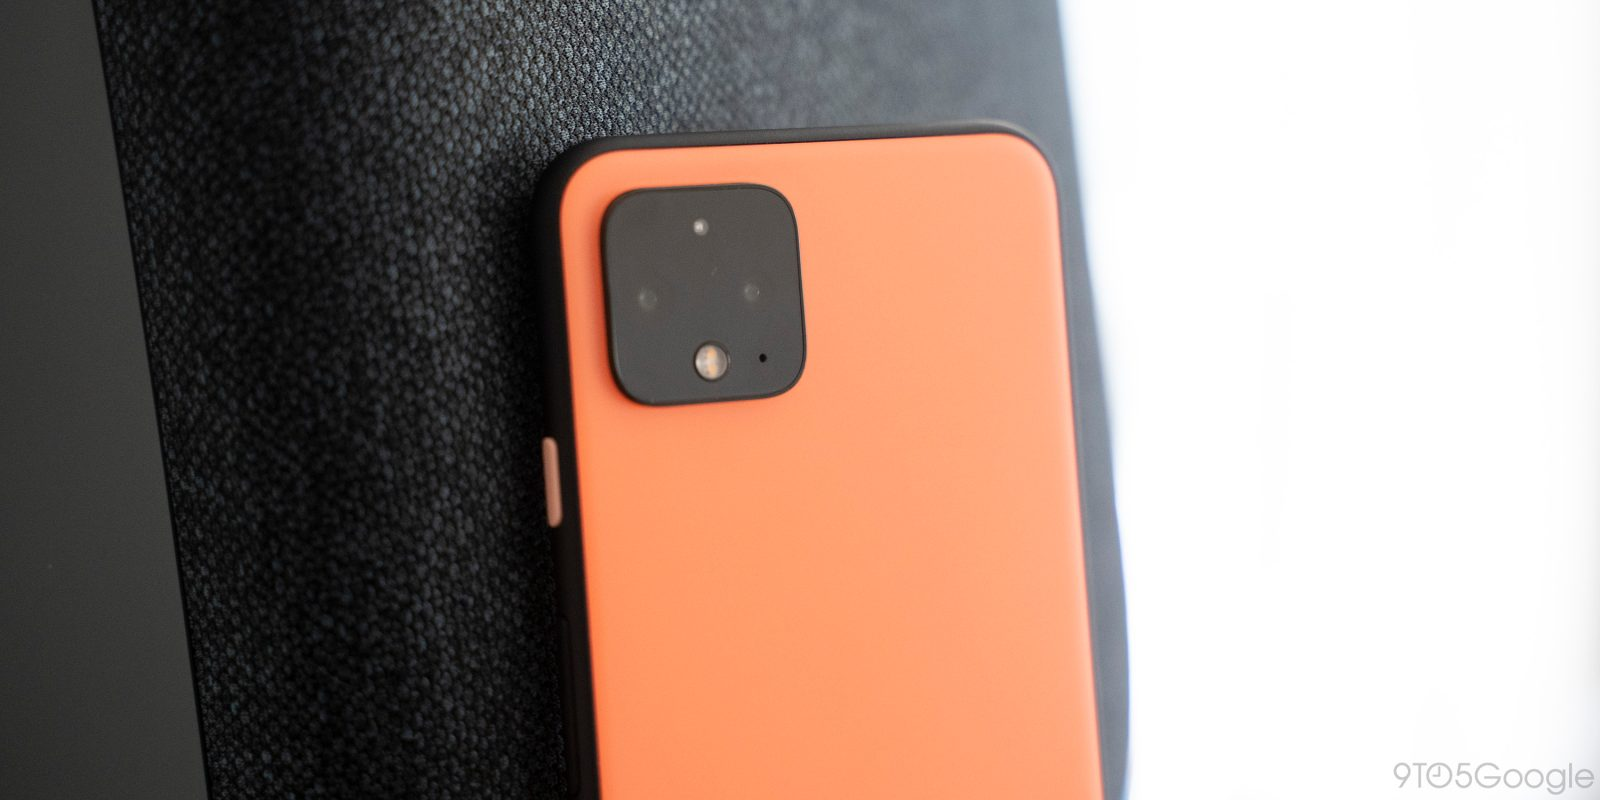 Google Pixel 4 Leaks Specs Release Date And More 9to5google